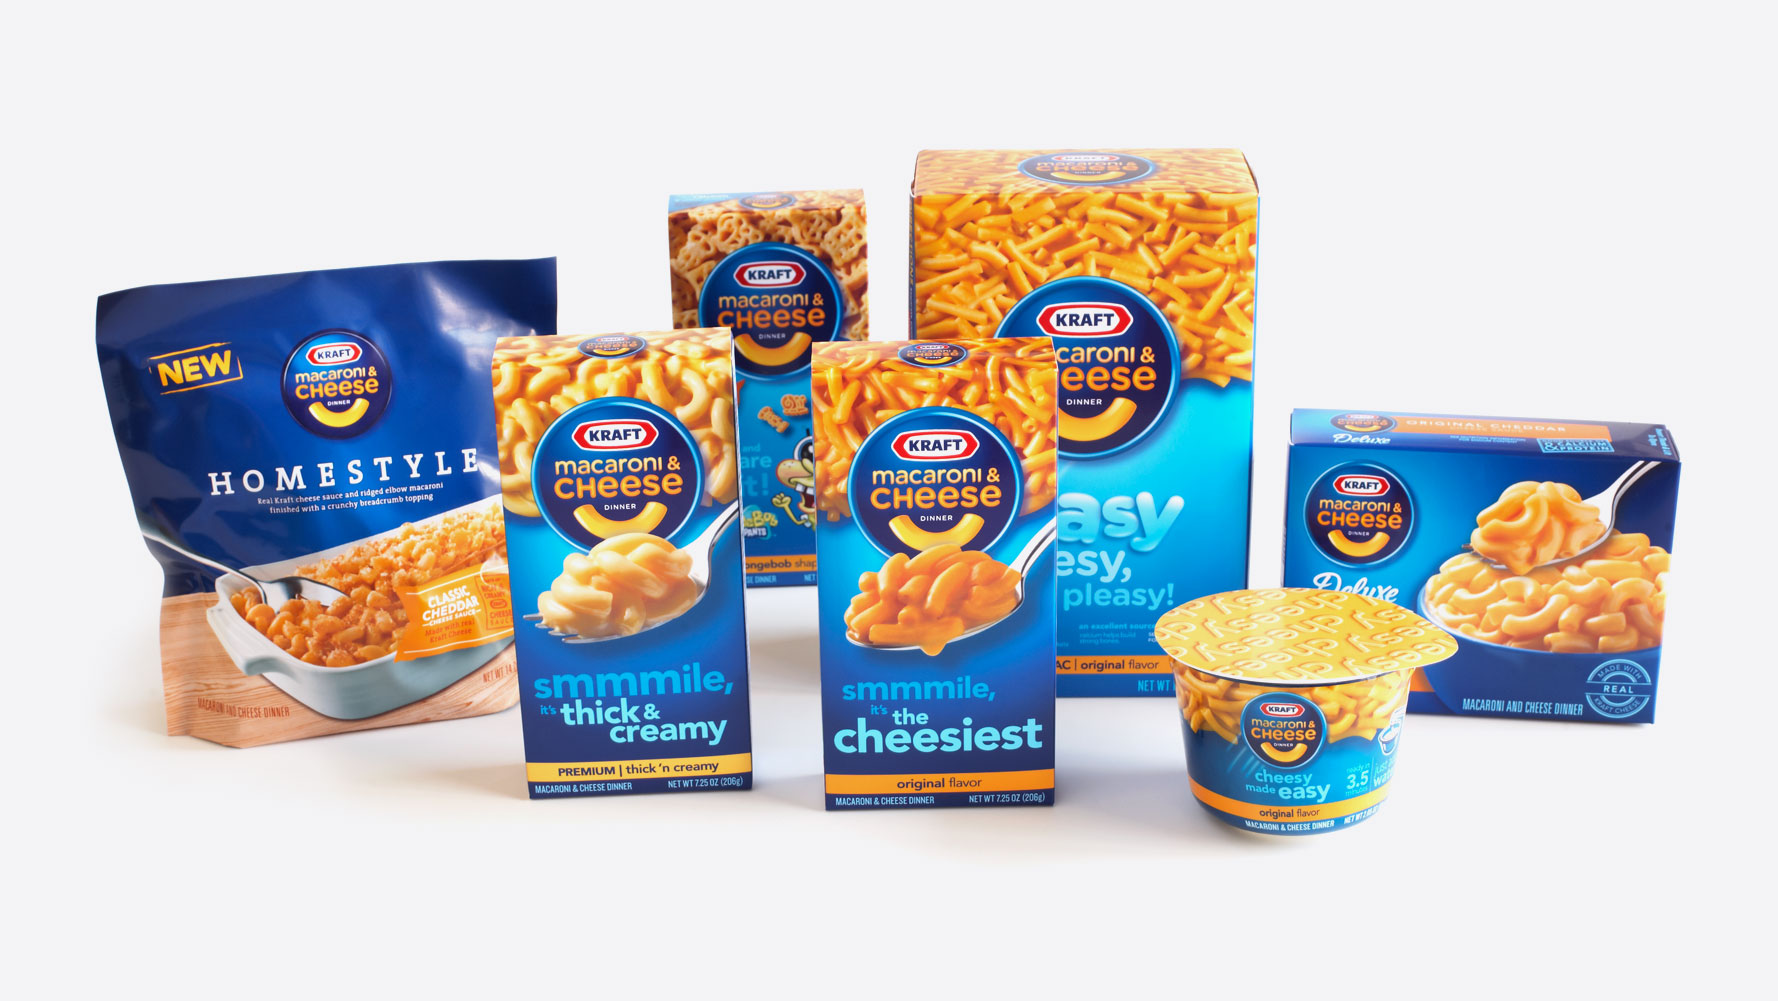 Kraft Macaroni & Cheese Product Portfolio